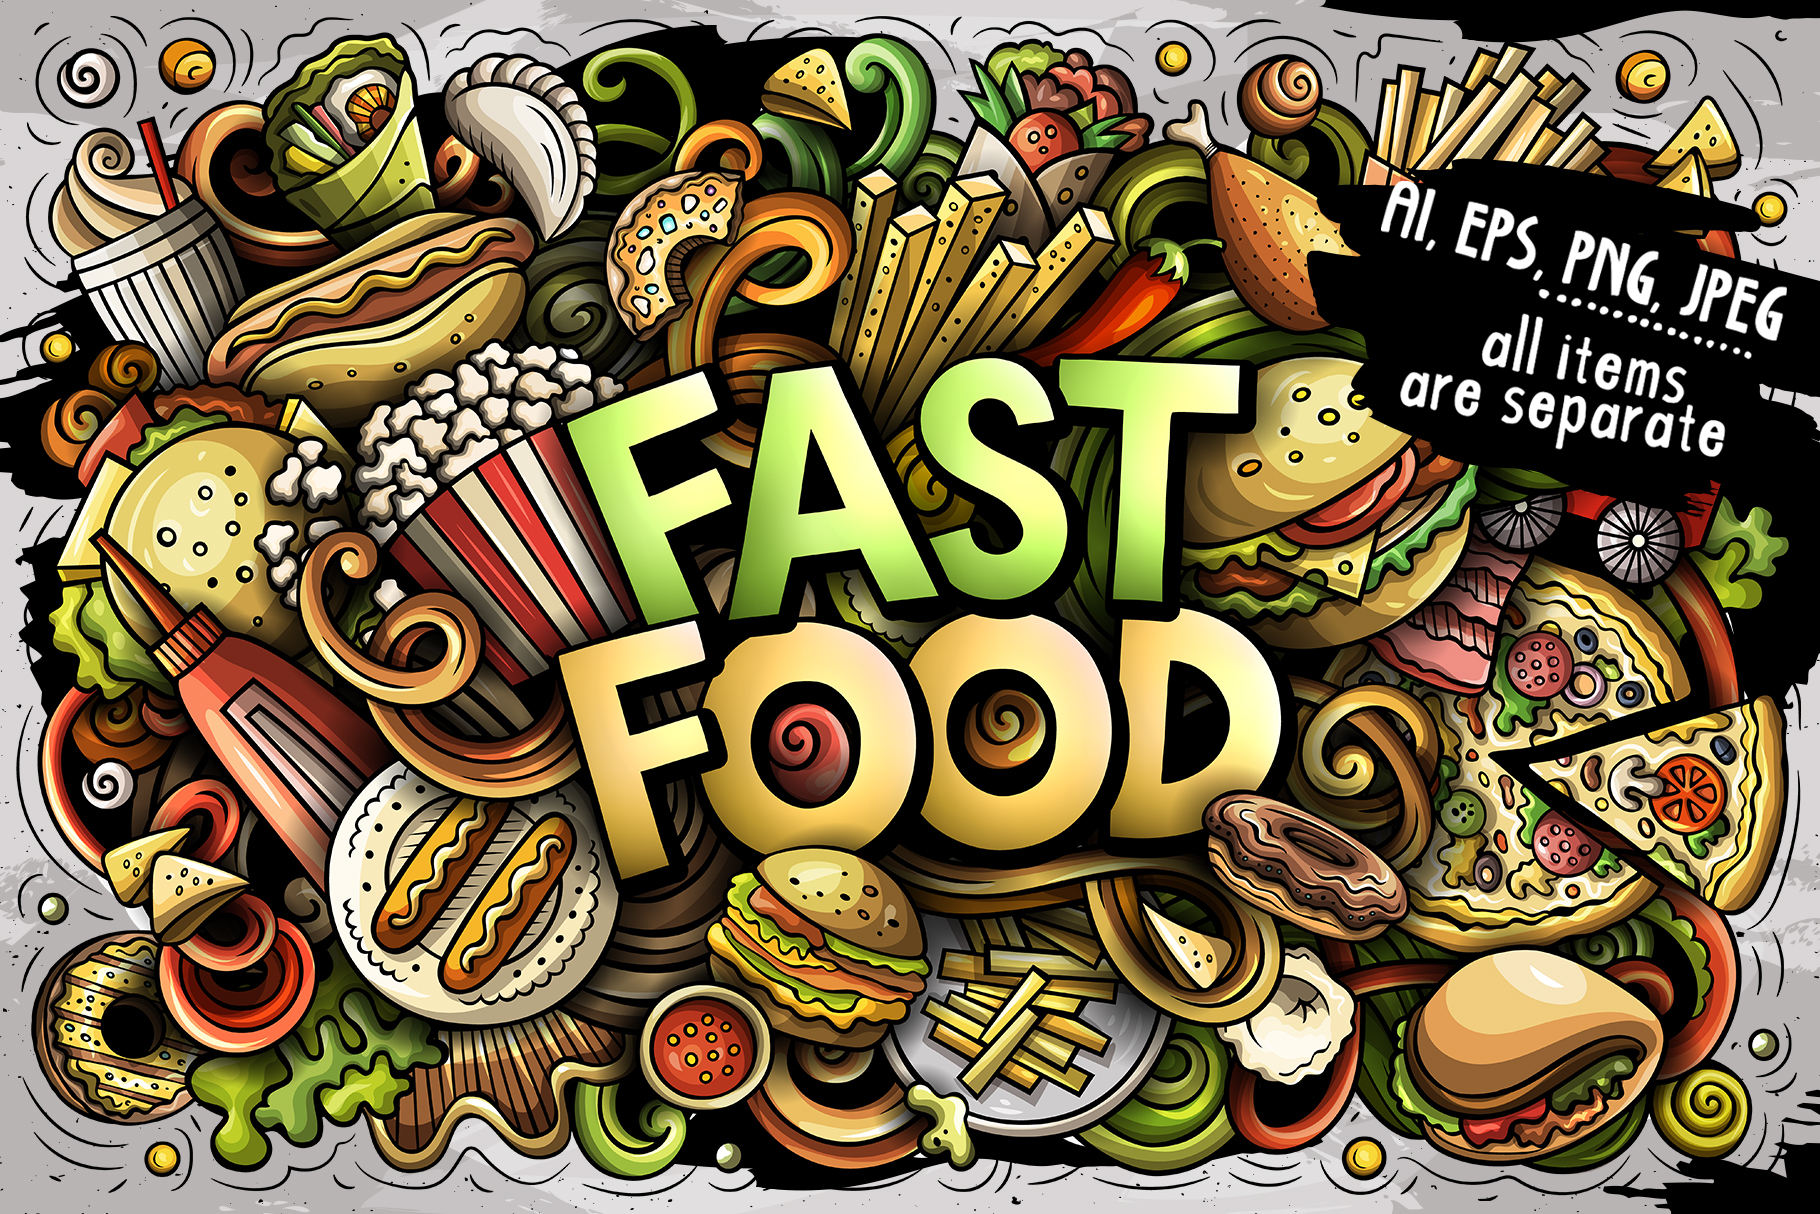 Download Free Fast Food Cartoon Doodles Illustration Graphic By Balabolka for Cricut Explore, Silhouette and other cutting machines.